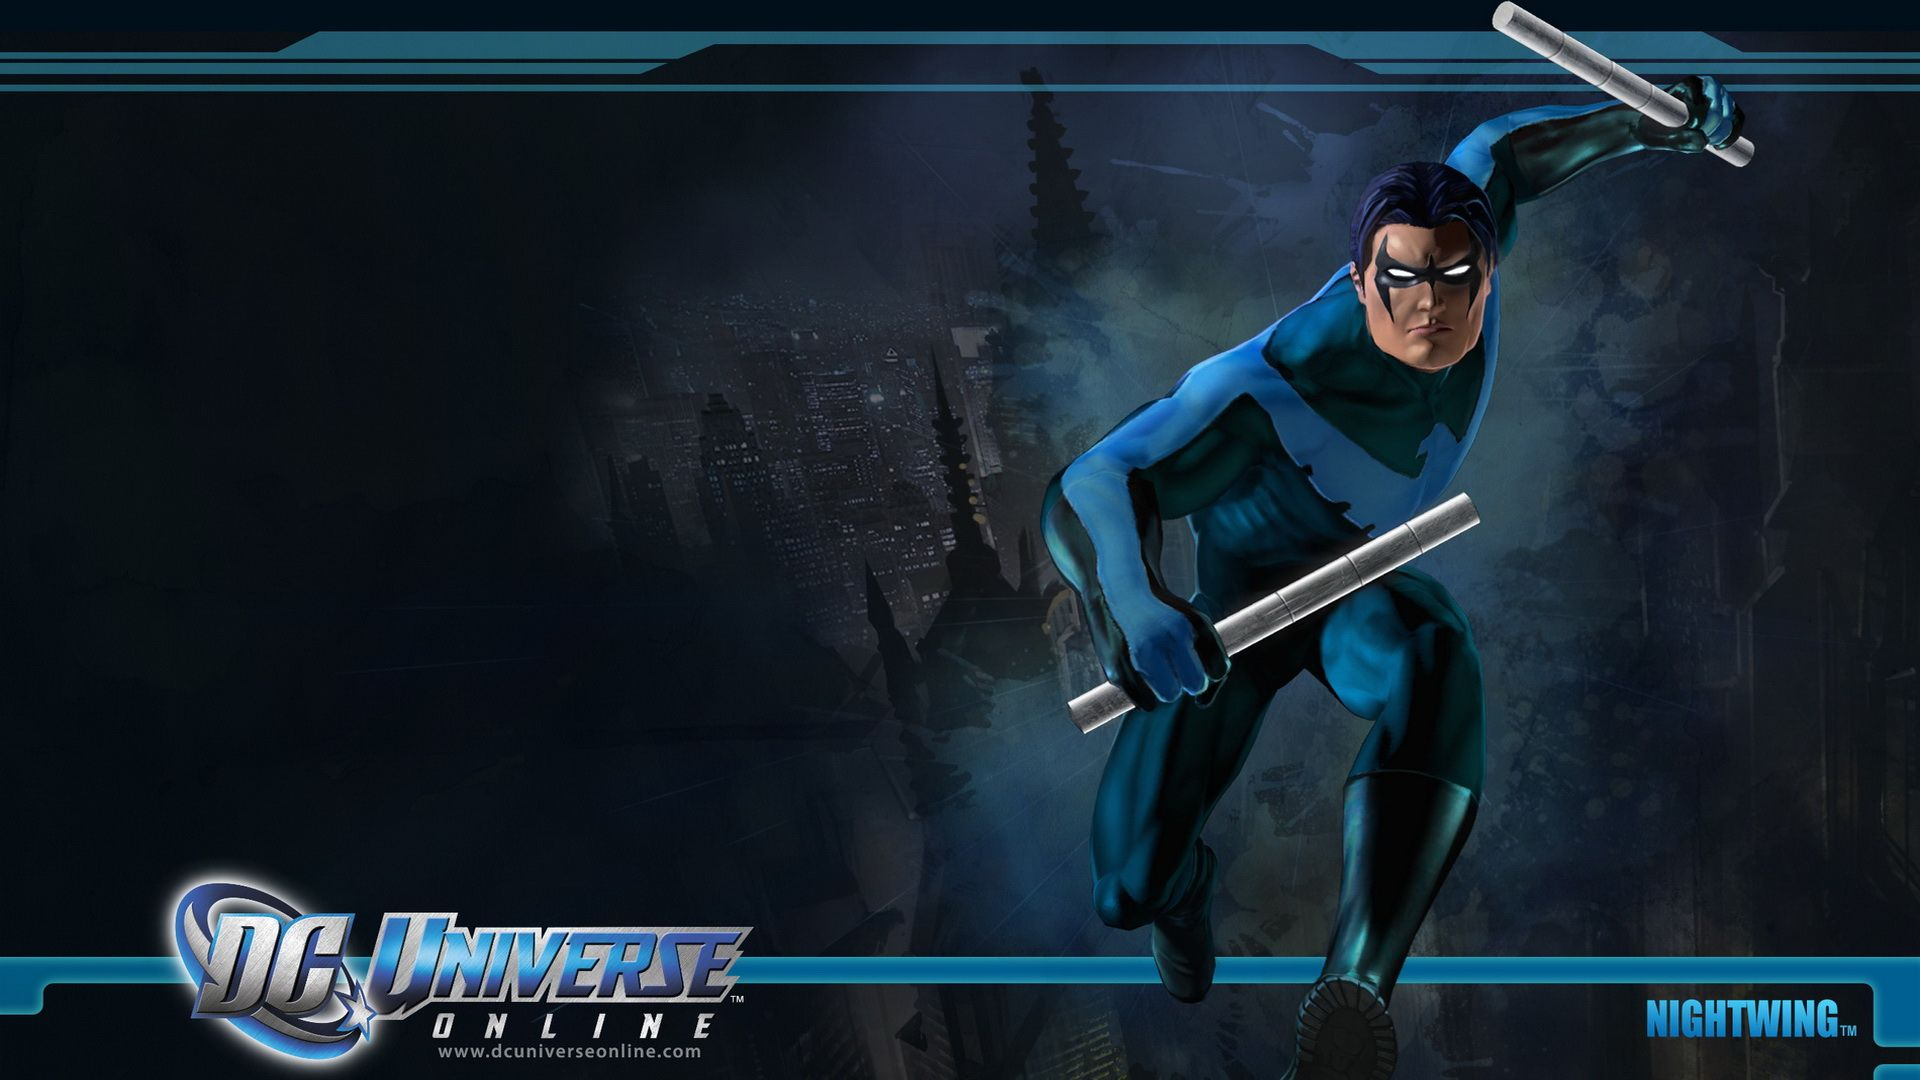 Nightwing 1920x1080 Wallpapers 1920x1080 Wallpapers Pictures 1920x1080